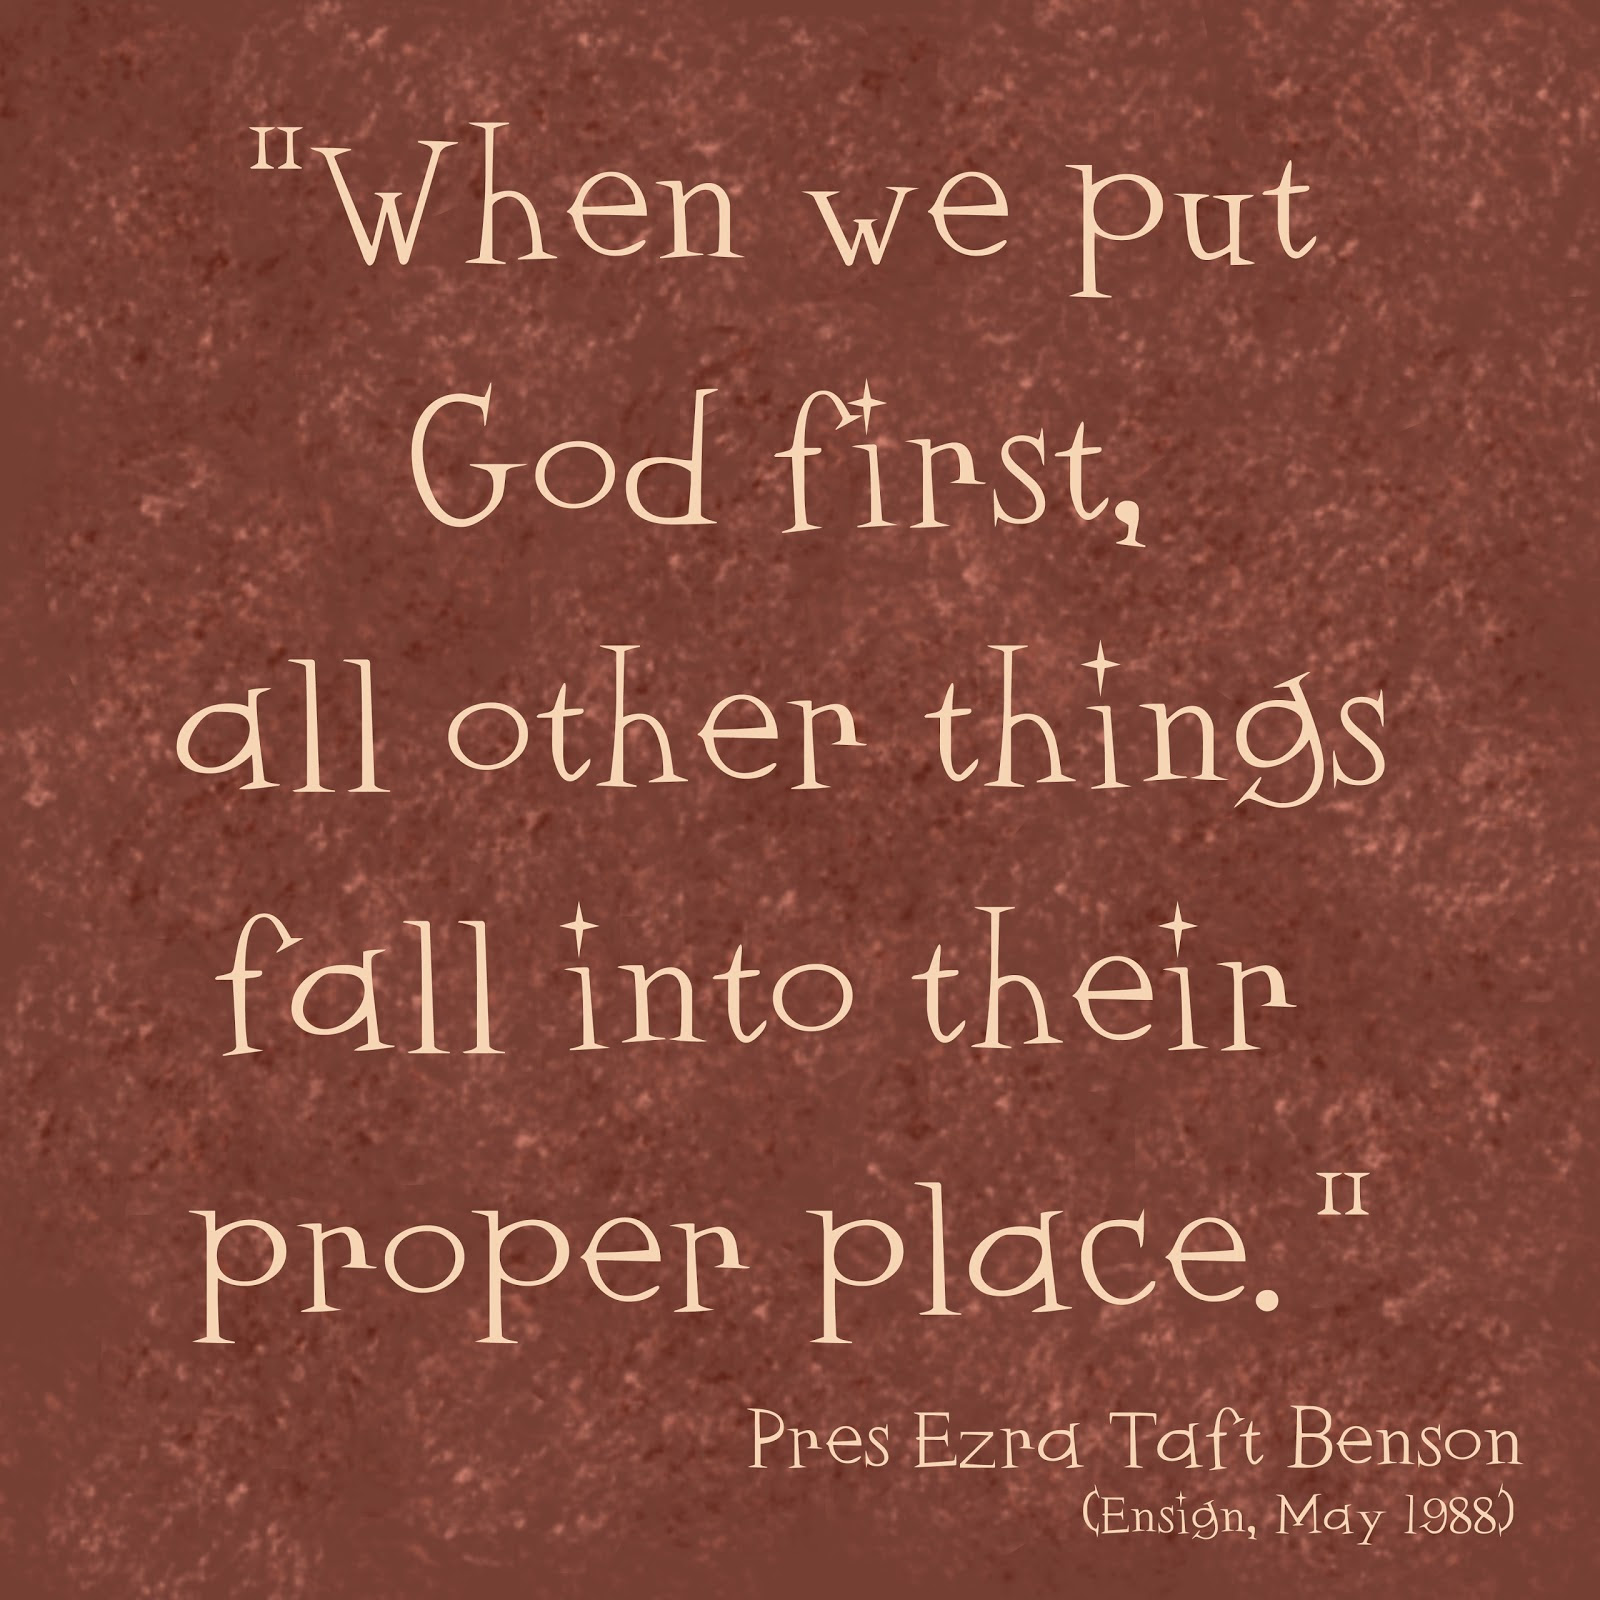 Quotes About Putting Jesus First 21 Quotes